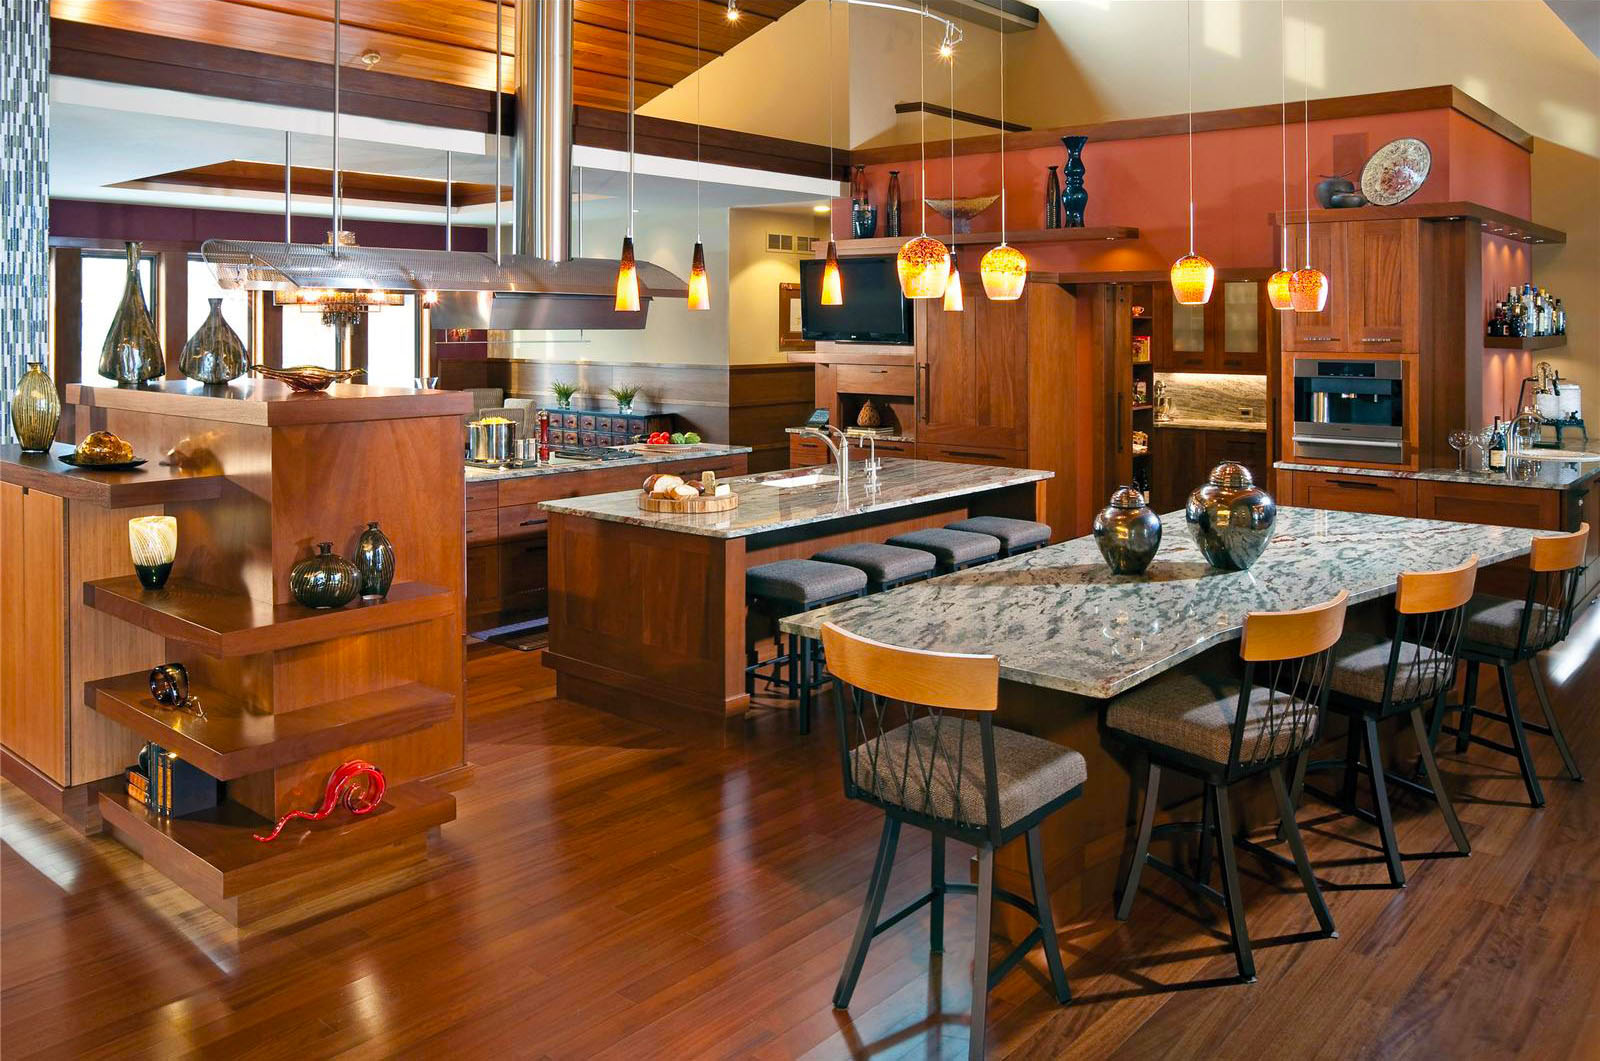 contemporary-kitchen-designs-with-classy-and-luxury-open-kitchen-design-with-all-wooden-funiture-decor-painted-brown-and-hardwood-flooring-kitchen-ideas-with-pendant-lights